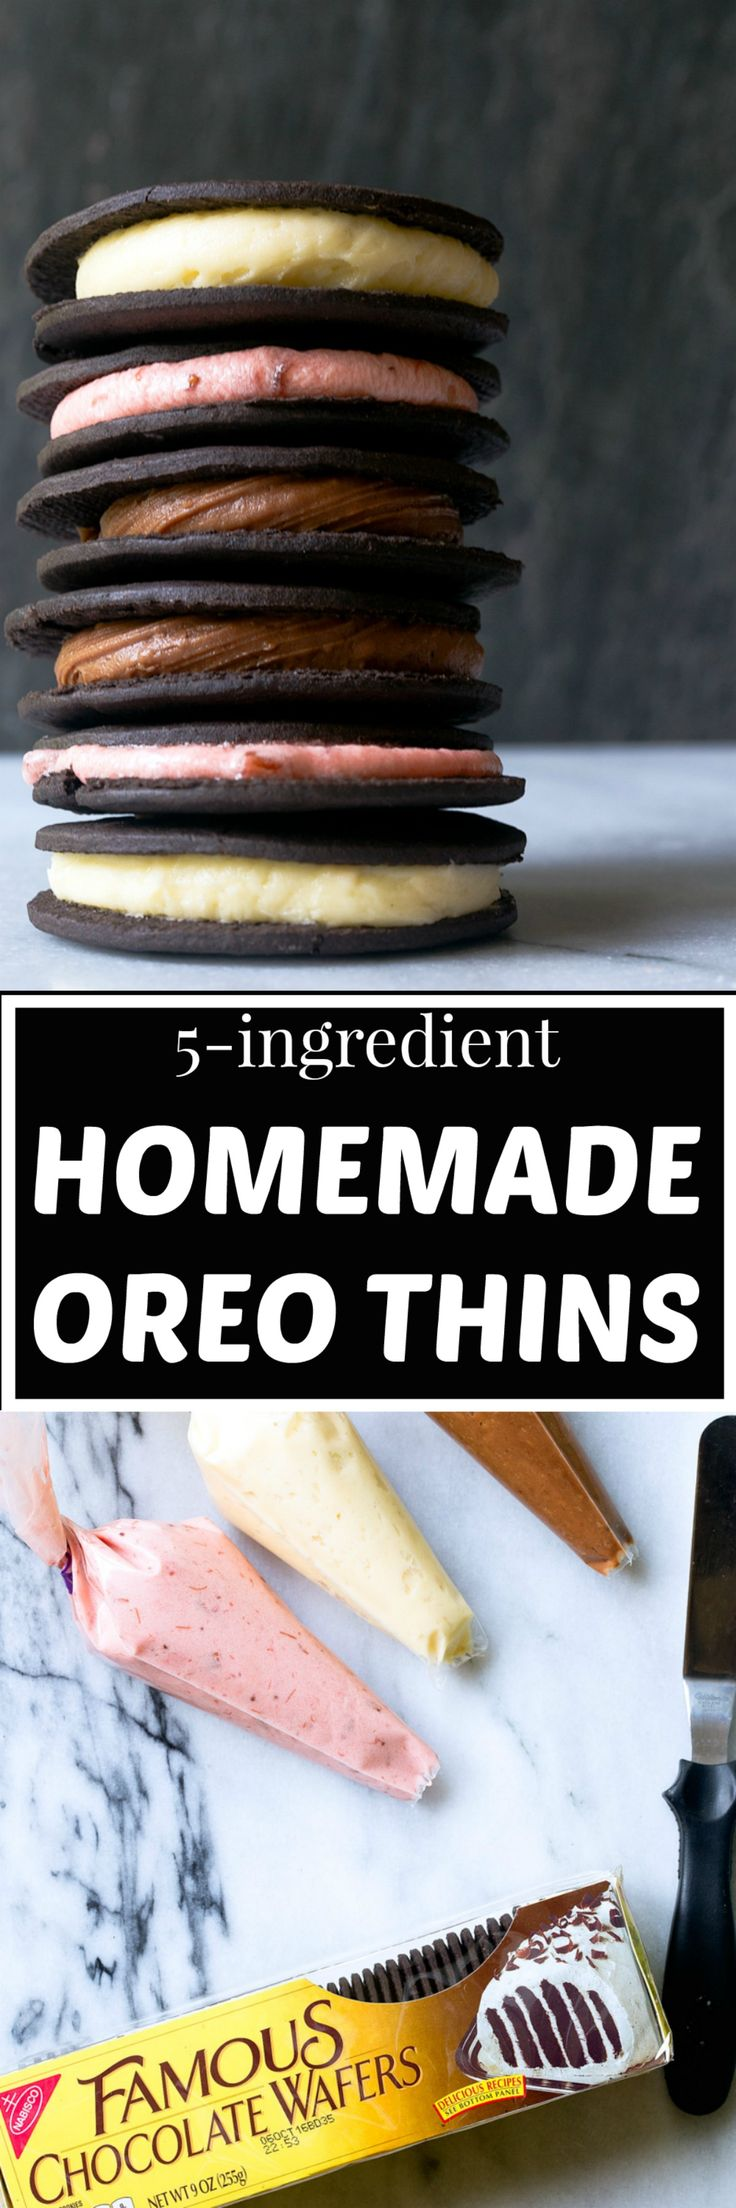 Easy homemade oreos that taste just like Oreo Thins using store-bought chocolate wafer cookies! Make your favorite buttercream (or make all 3!). Small batch dessert: each flavor makes just 10 cookies. @DessertForTwo